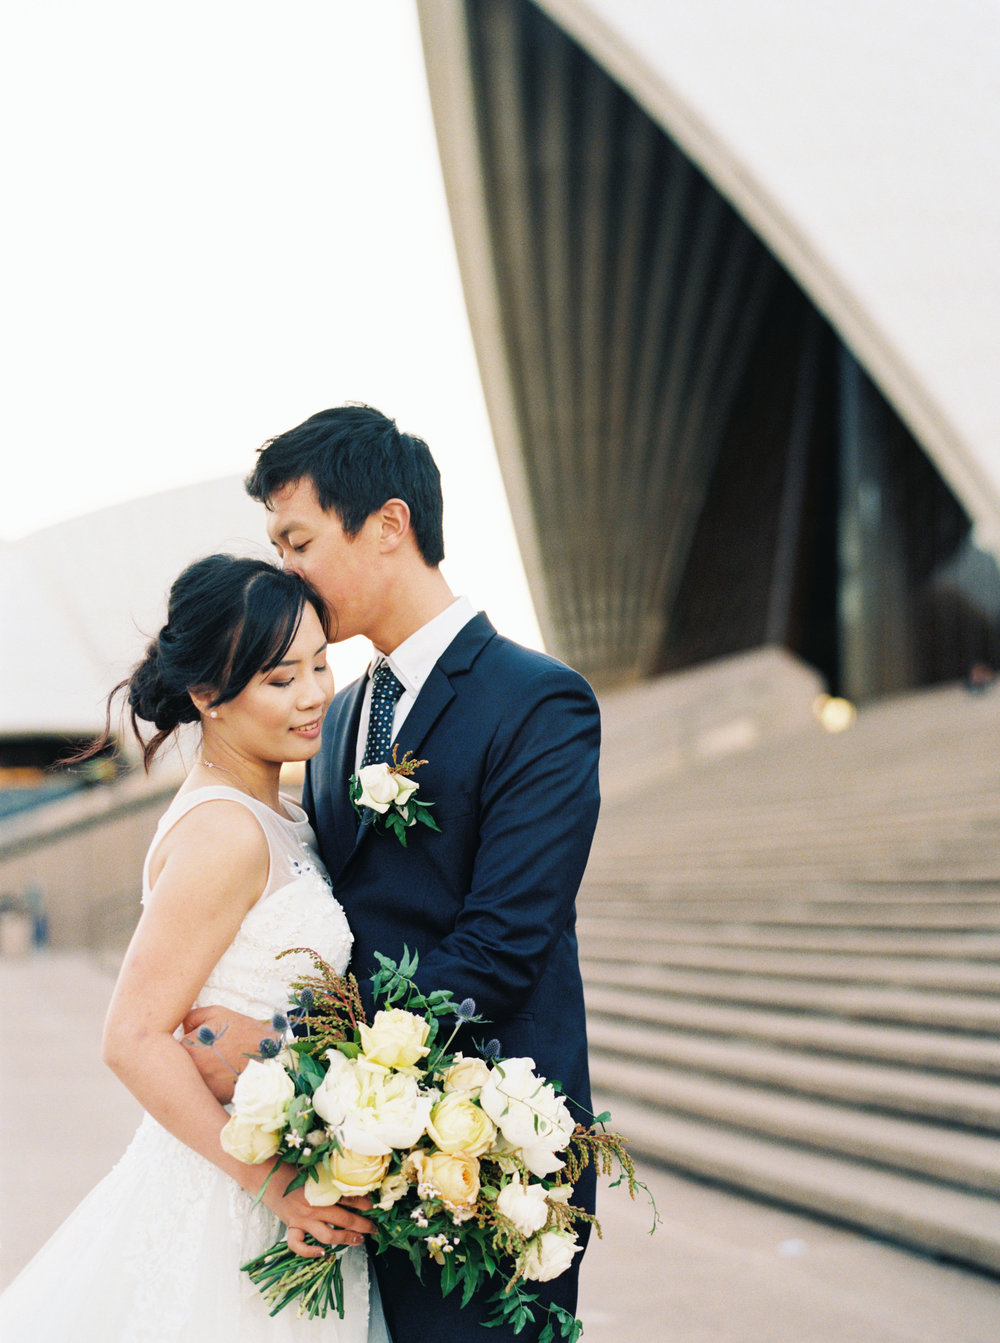 00050- Fine Art Film Australia Destination Sydney Wedding Photographer Sheri McMahon.jpg